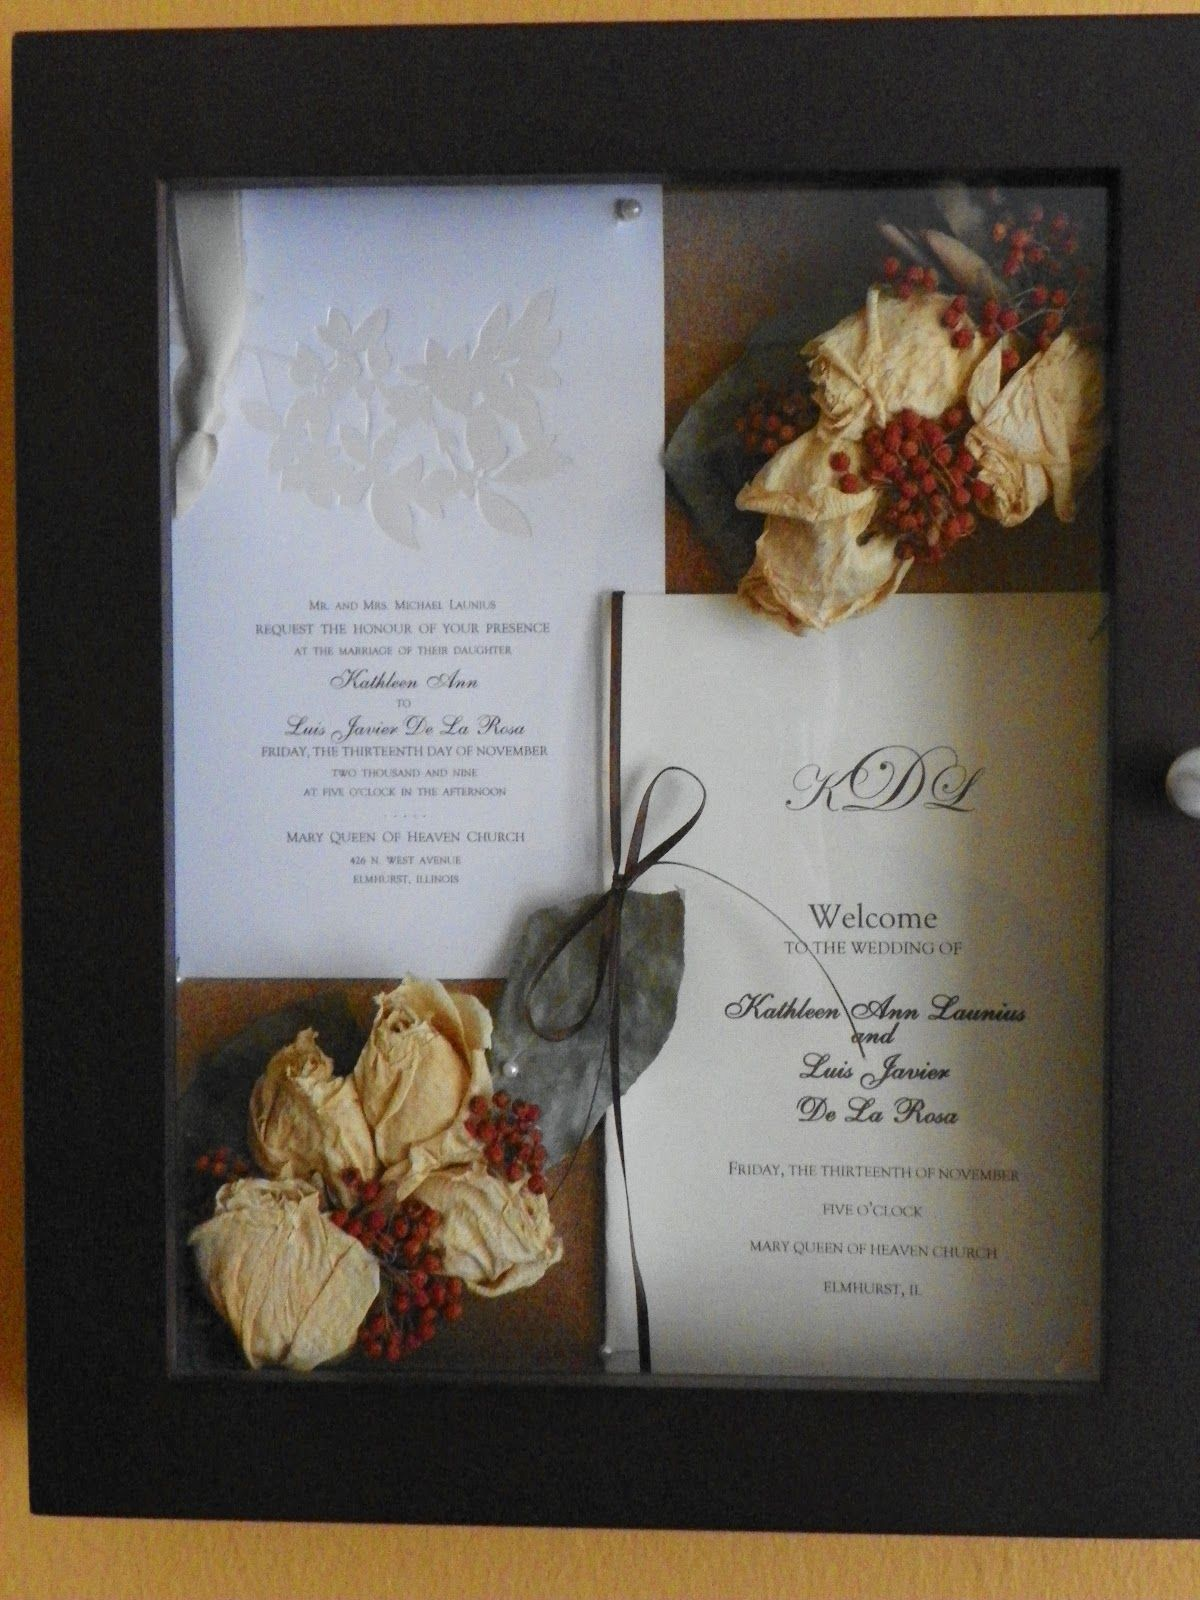 Wedding decorations at church november 2018 Best Shadow Box Ideas Pictures Decor and Remodel in   Old